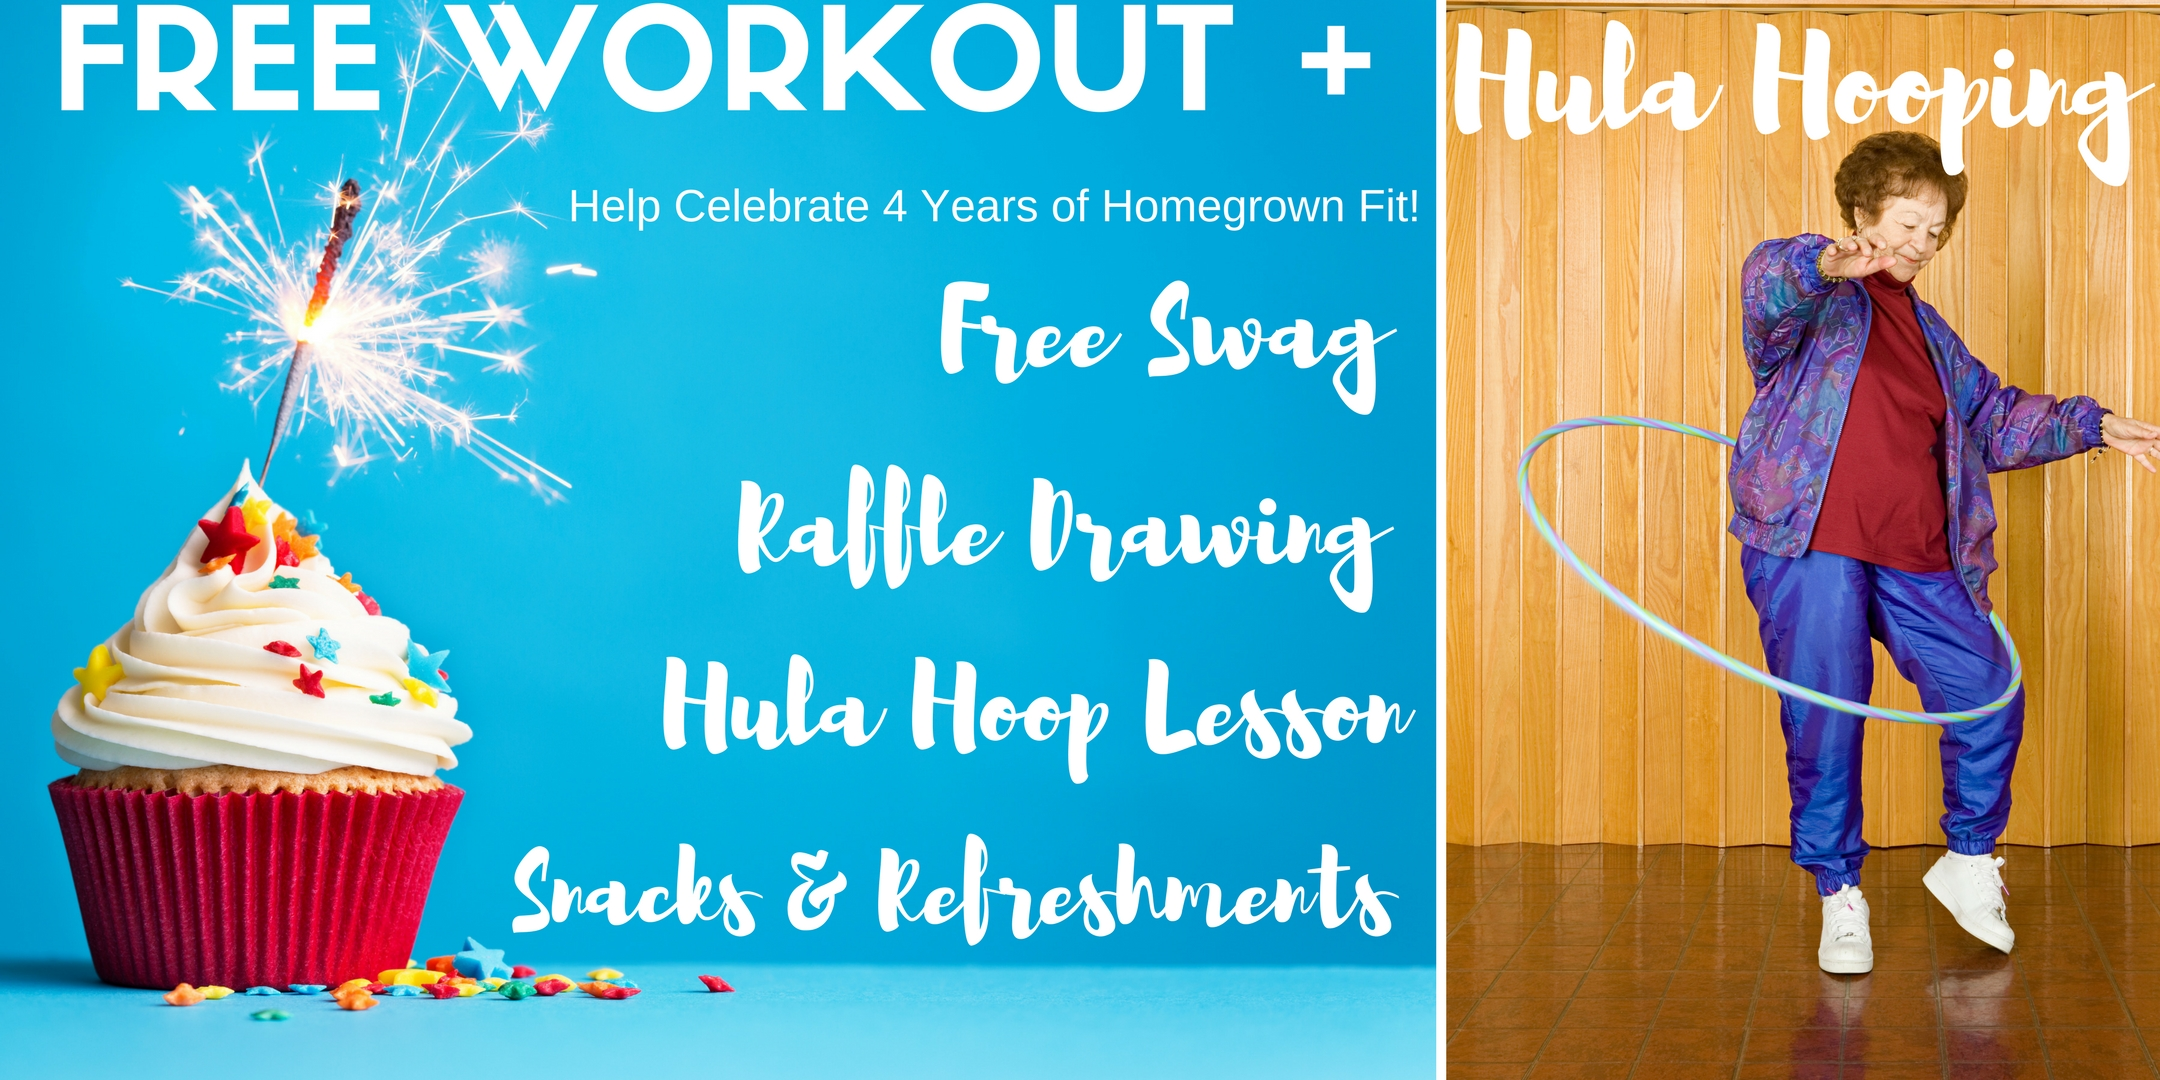 CLICK THE IMAGE ABOVE TO GRAB YOUR SPOT FOR THIS FREE WORKOUT EVENT!